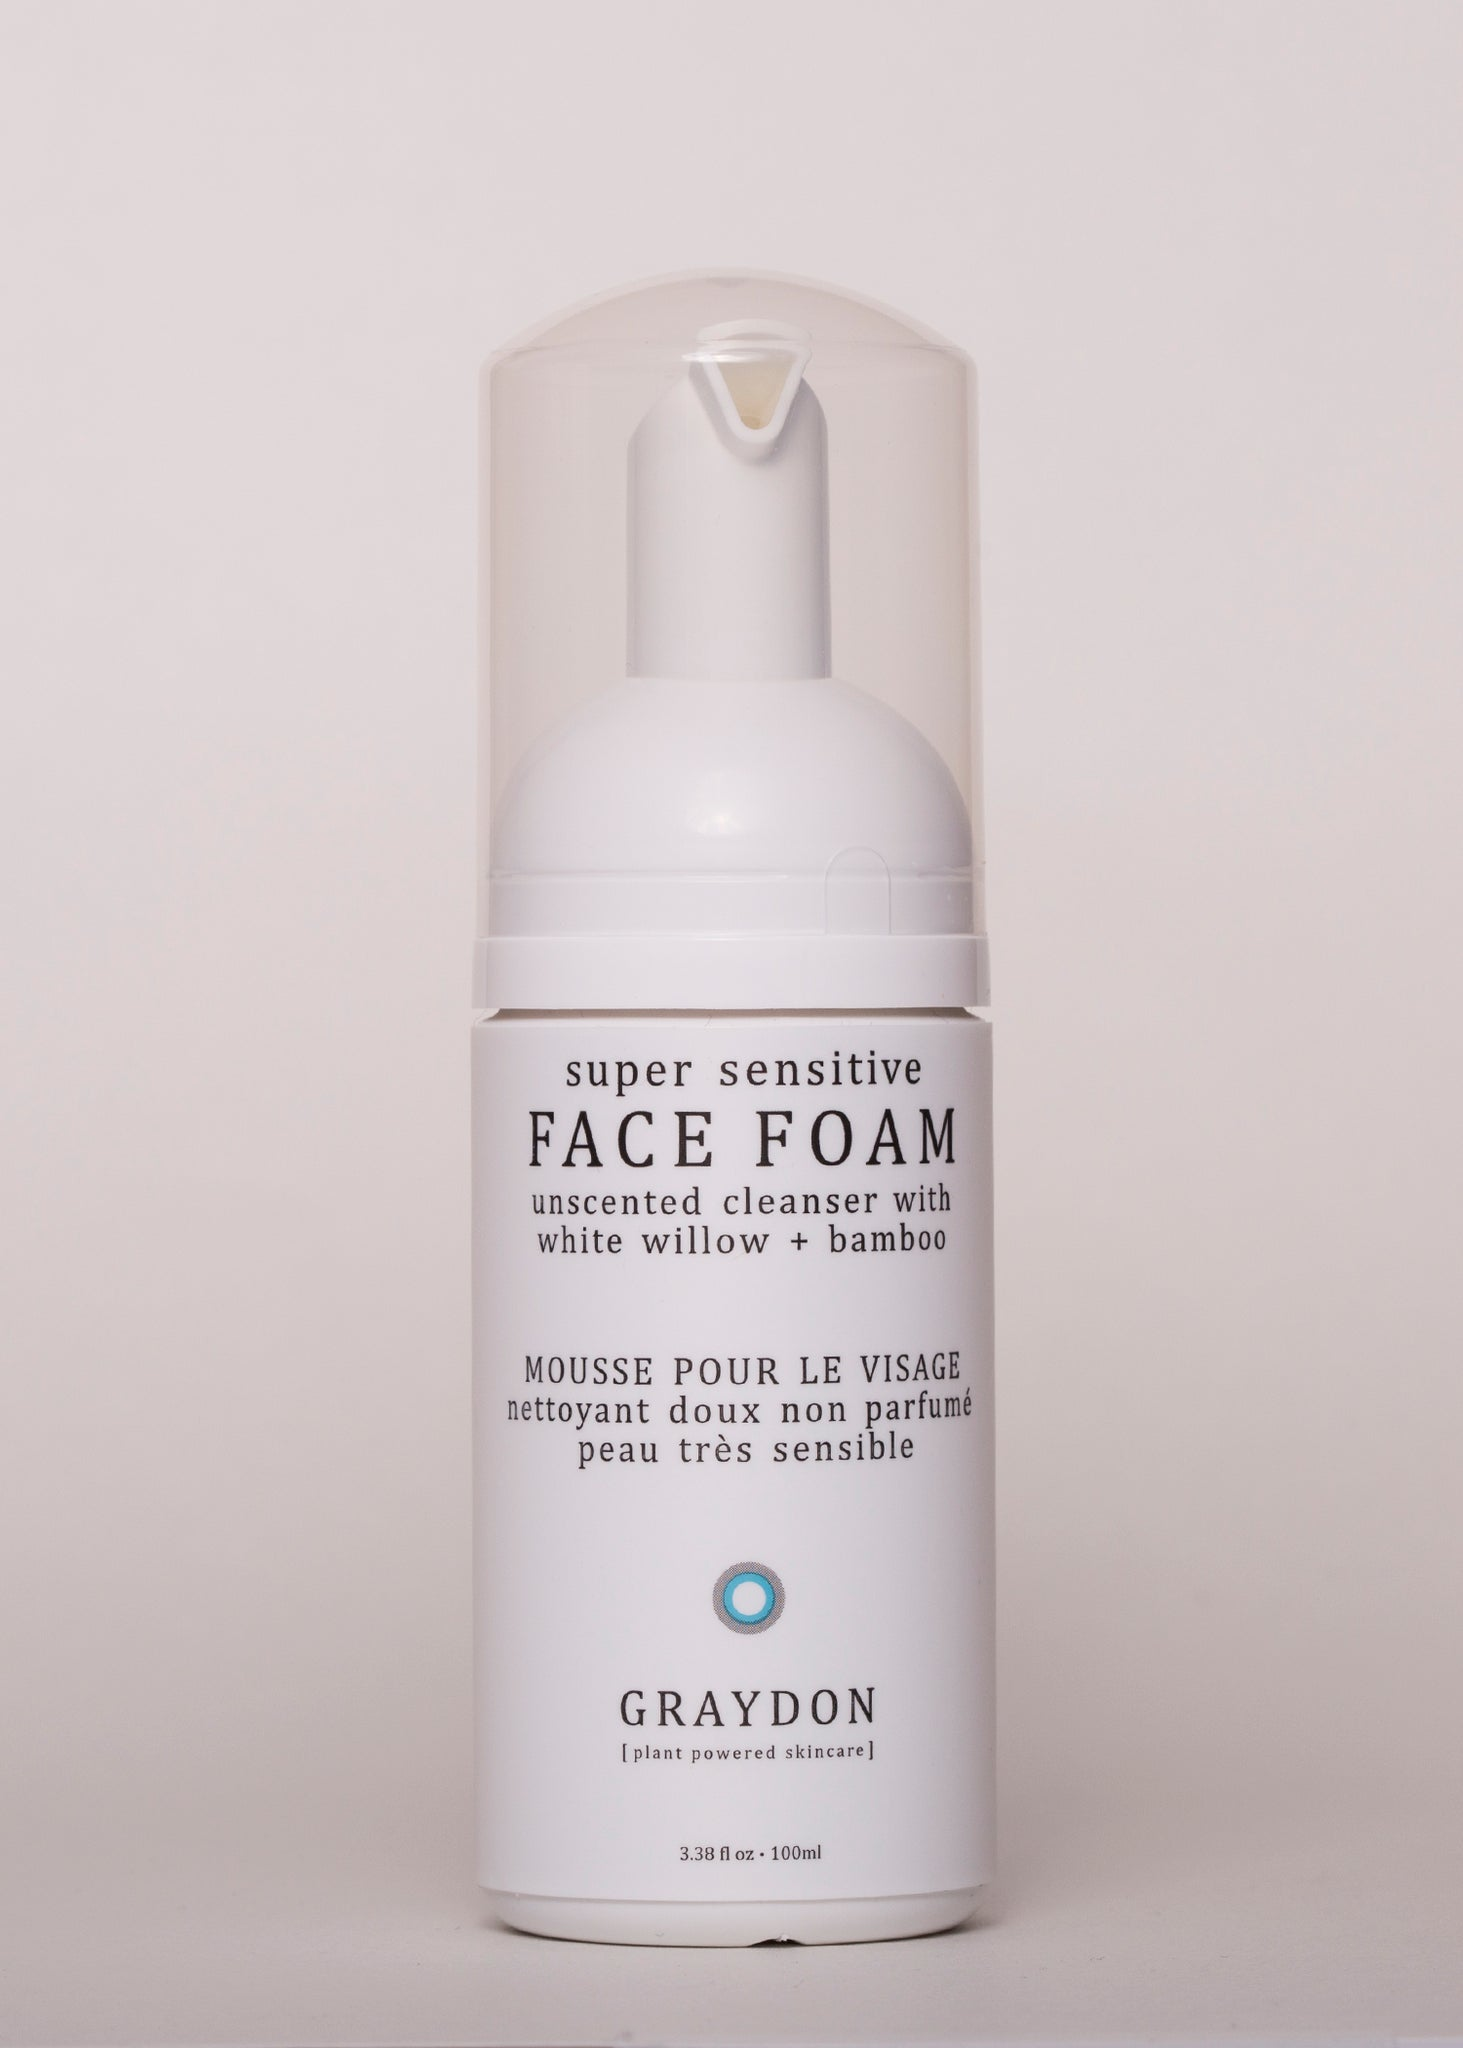 Face Foam - Graydon Skincare | Goodnight Beauty | cleanser, face wash, bamboo, natural beauty, natural skin care, canada beauty, canada brand, made in canada